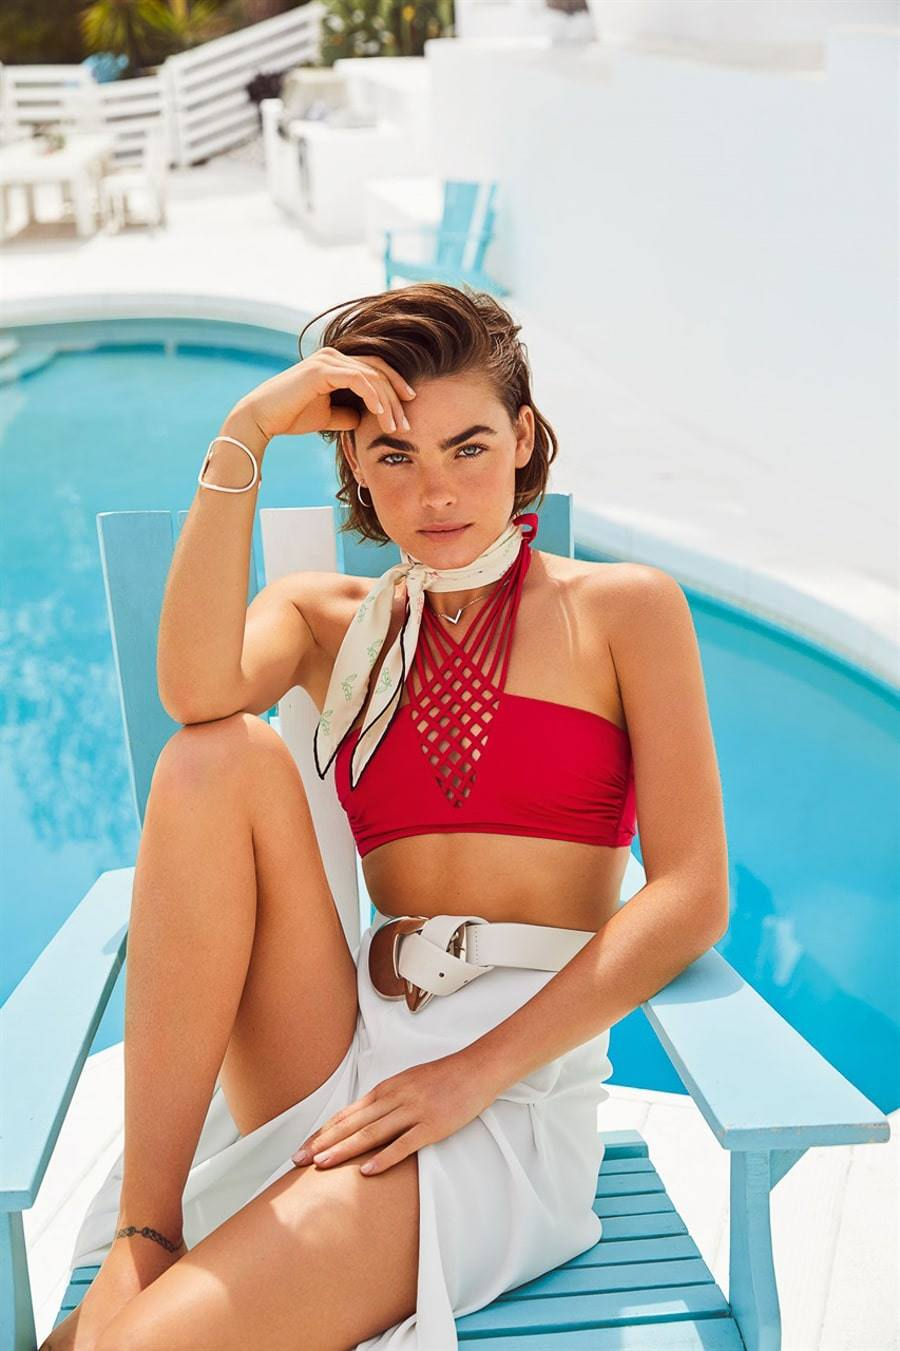 Vanity Fair Italia June 2018 Bambi Northwood-Blyth by Hunter & Gatti